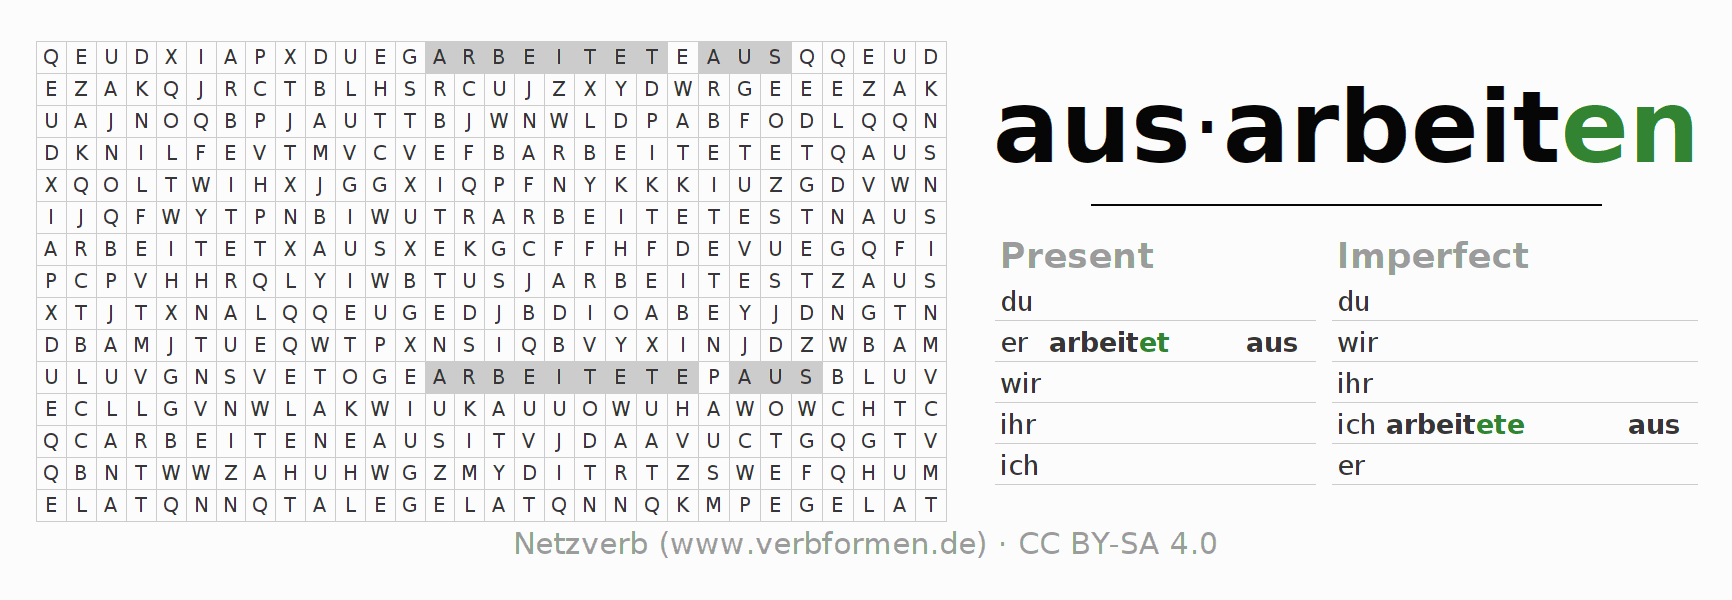 Word search puzzle for the conjugation of the verb ausarbeiten